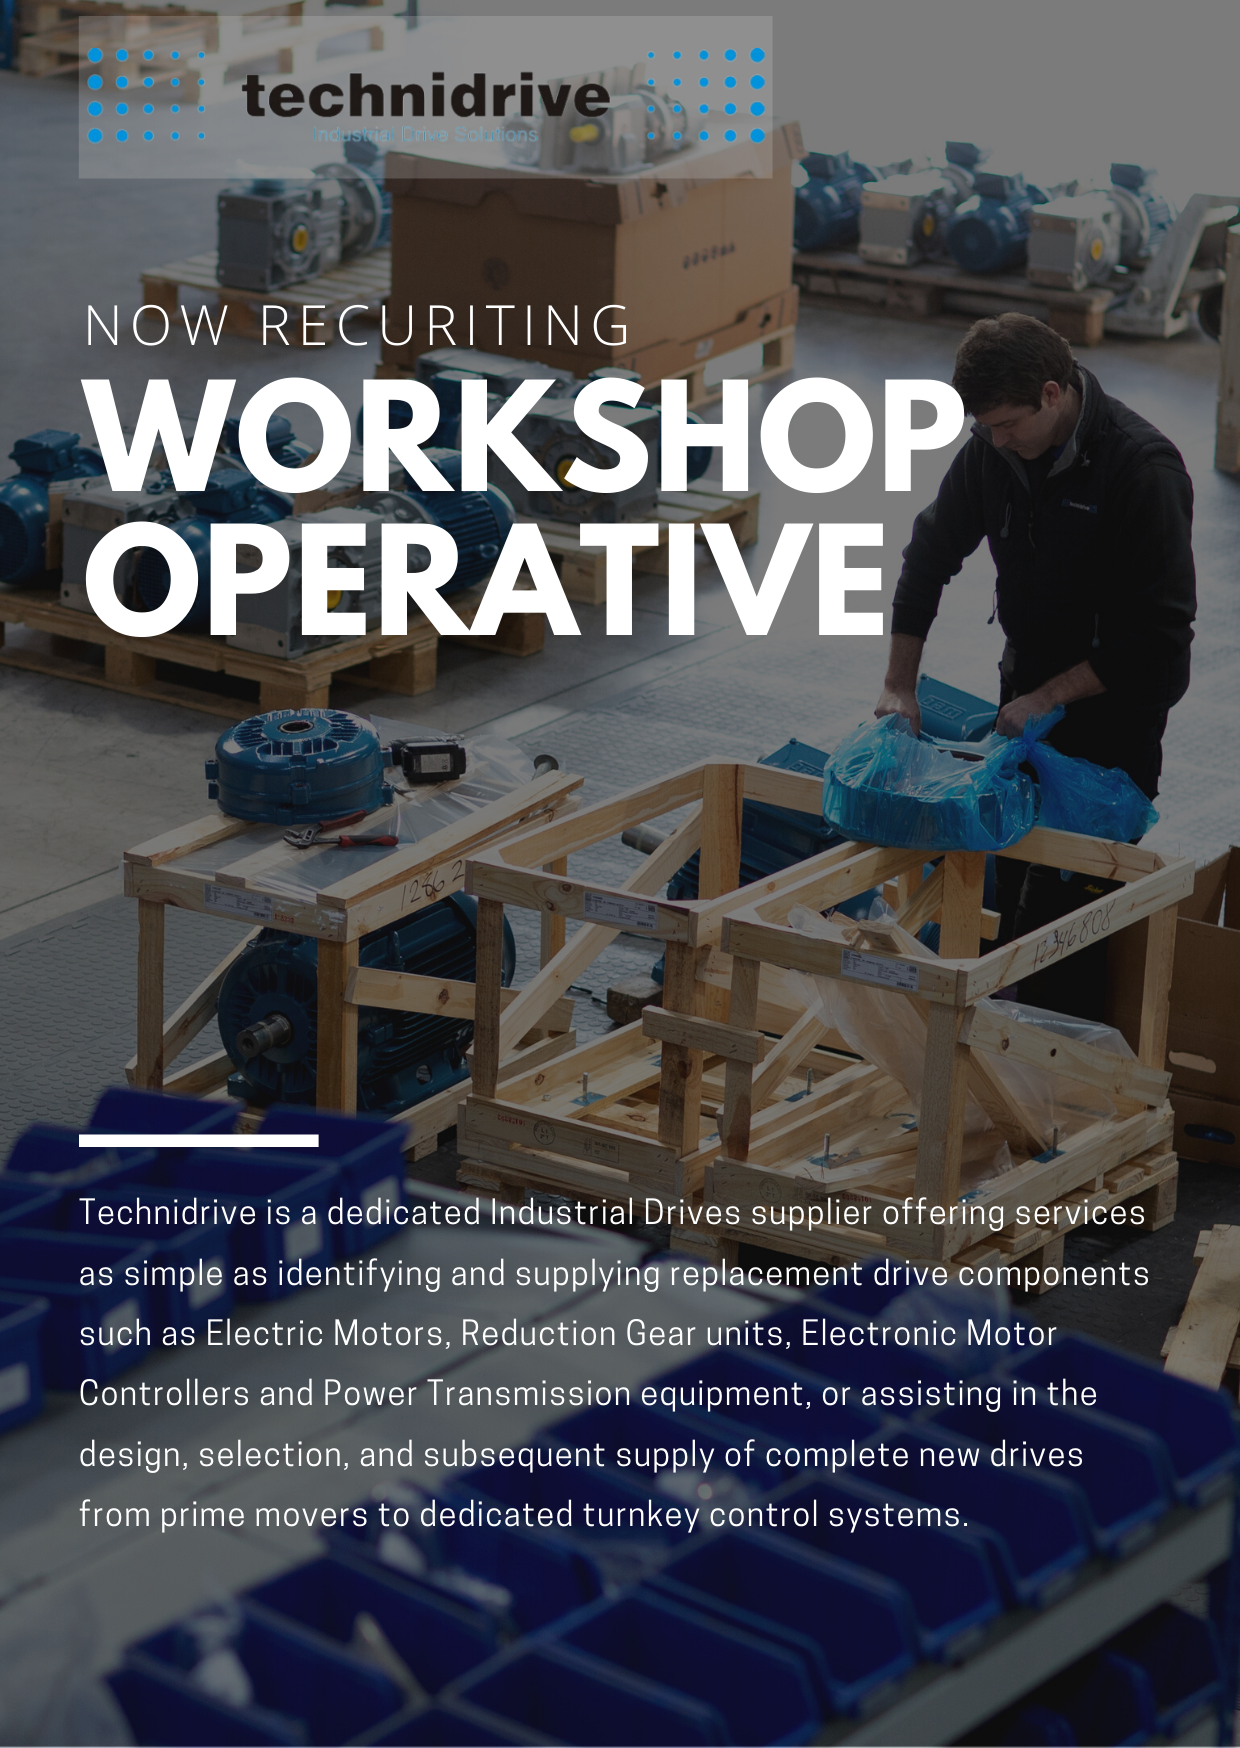 We are recruiting a Workshop Operative